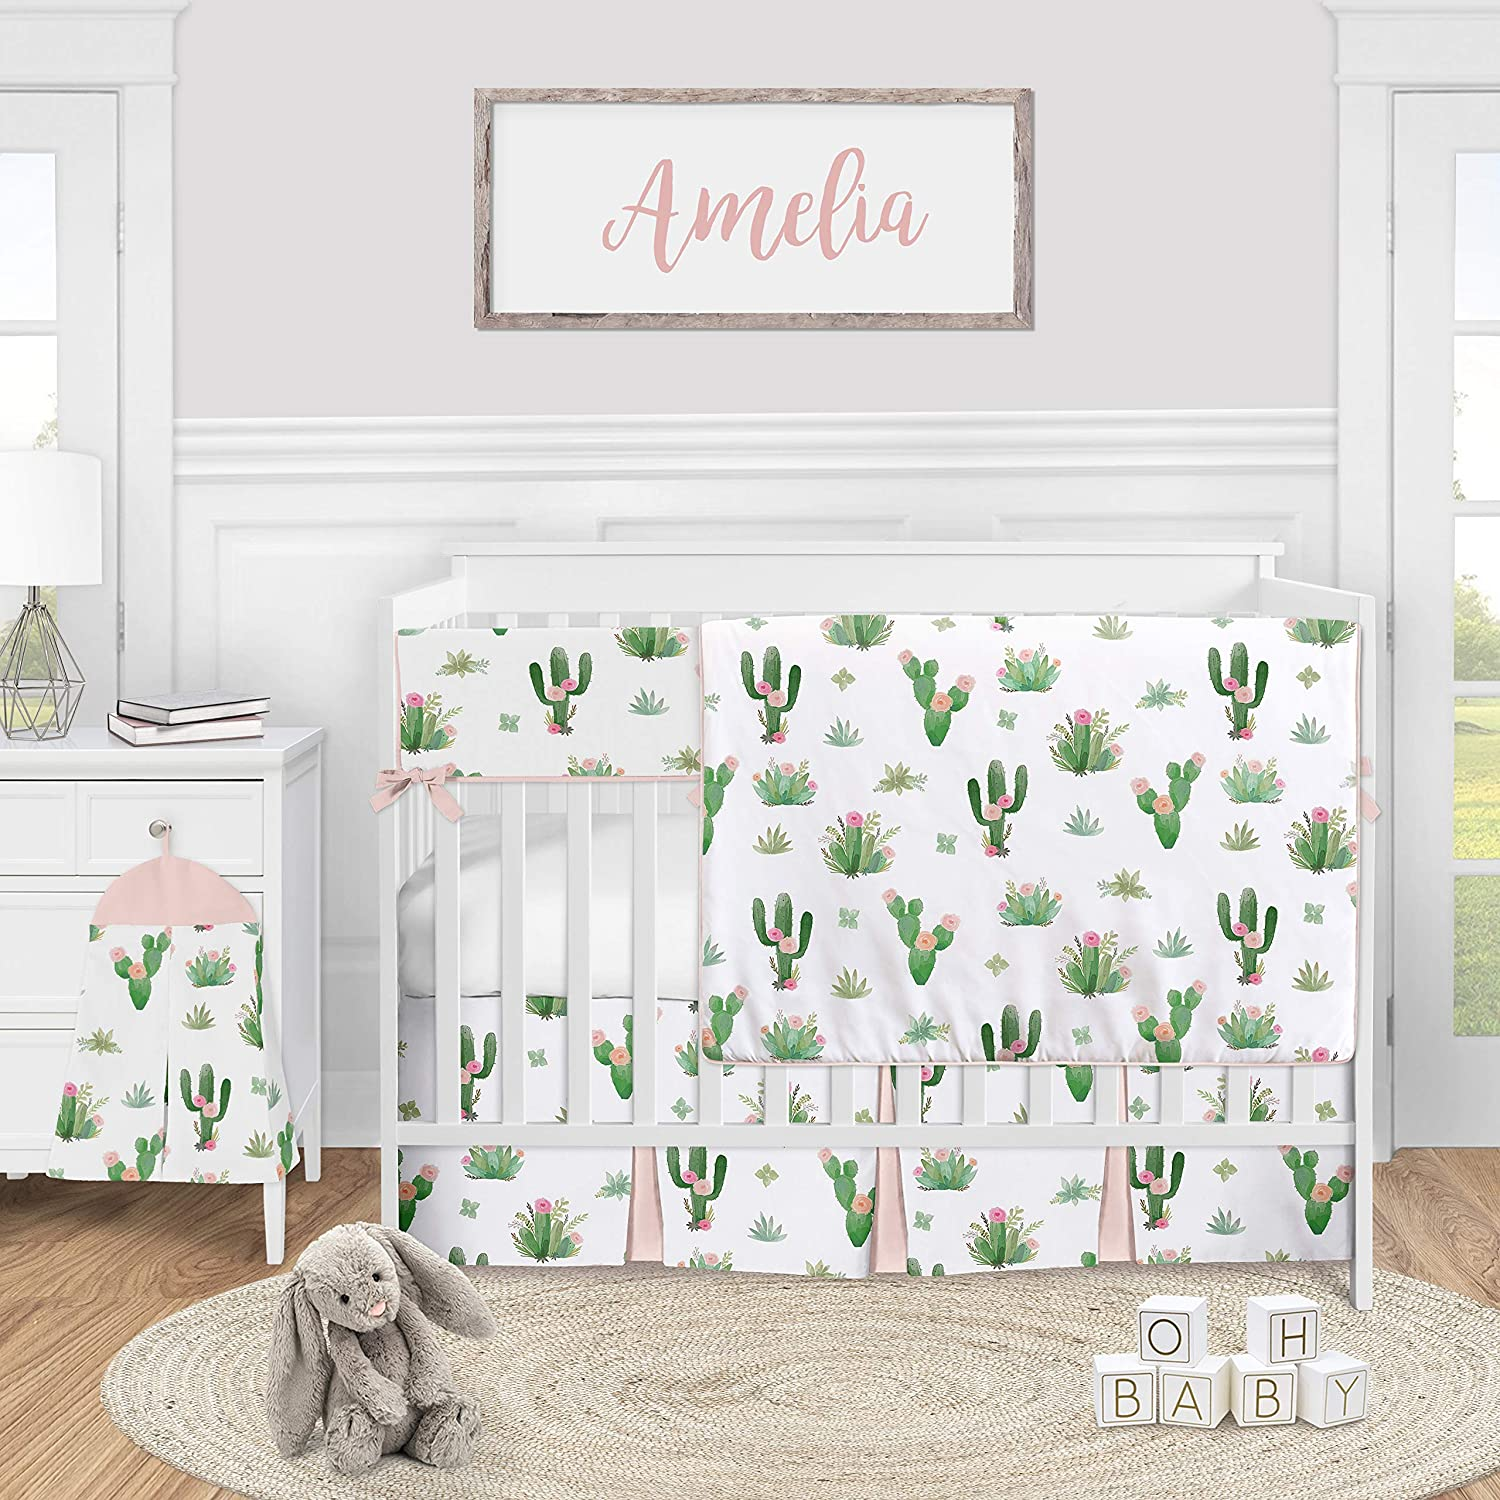 Cactus Crib Sheet Cactus Baby Bedding Baby Gear Nursery Accessories Cactus Changing Pad Cover Boho Cactus Baby Shower Gift